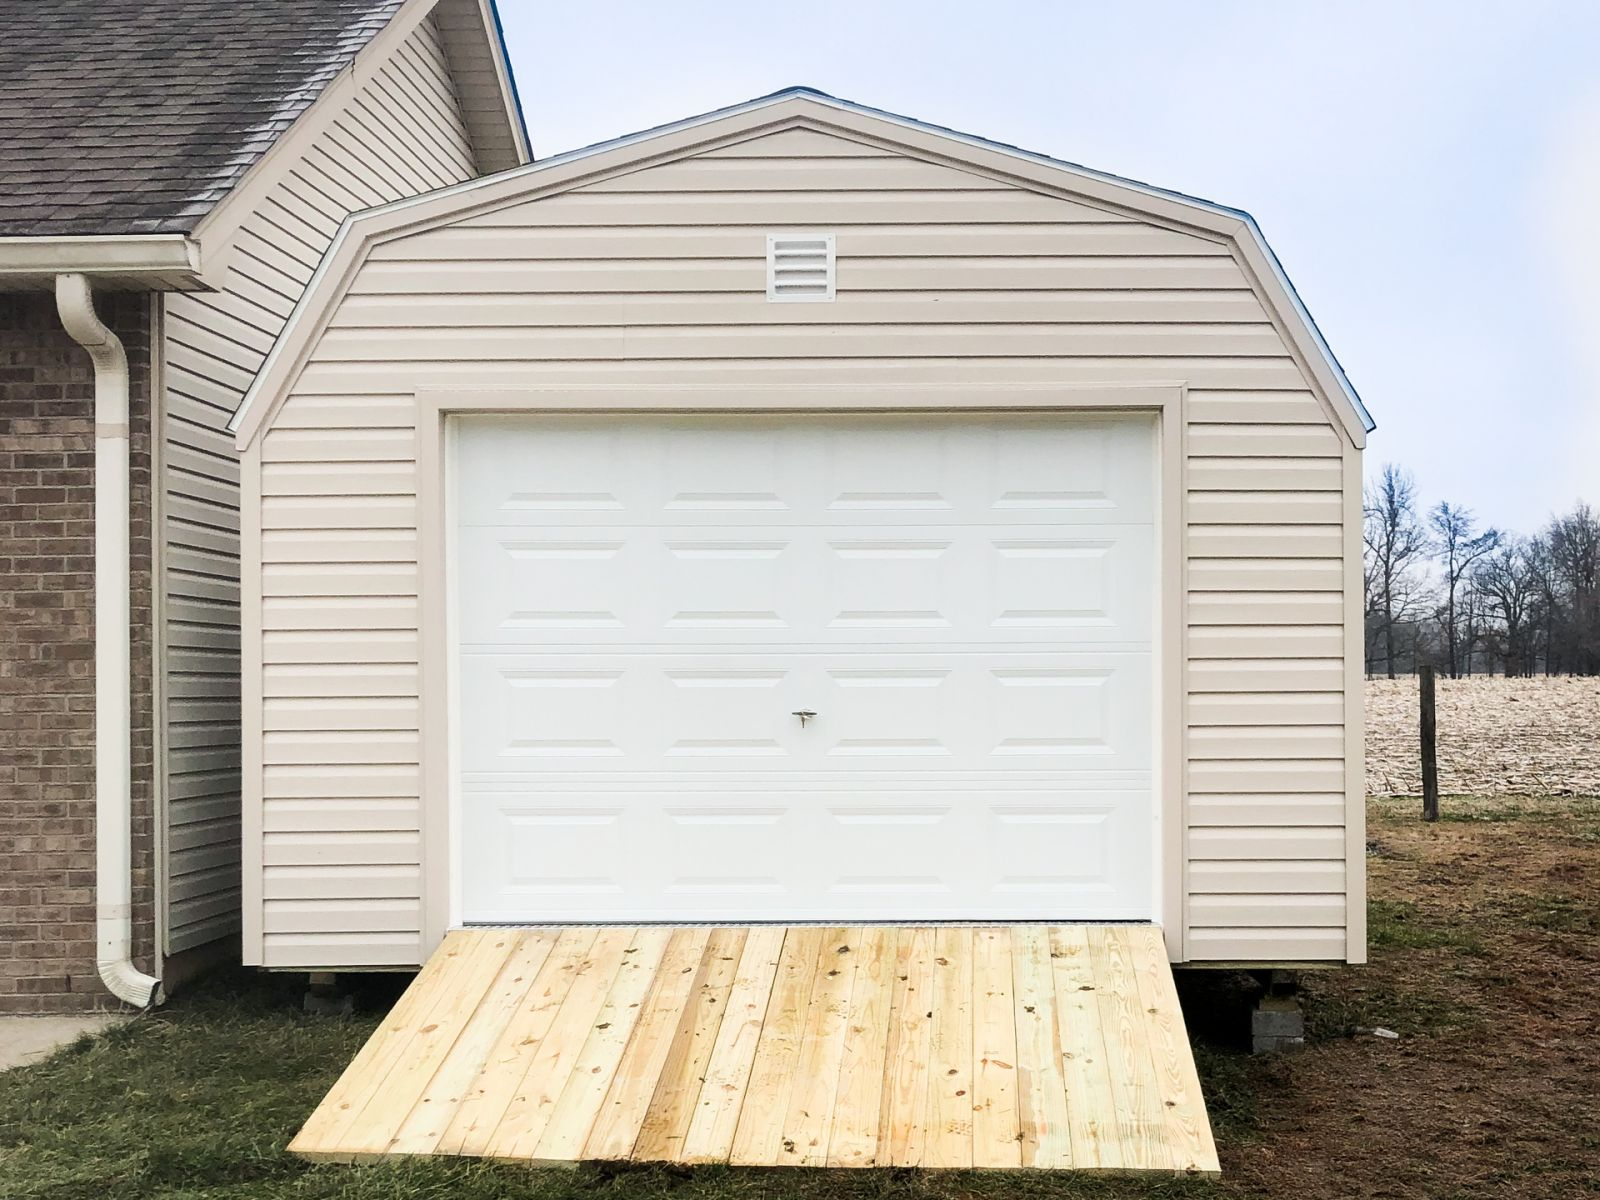 a portable garage shed for sale in lebanon tn